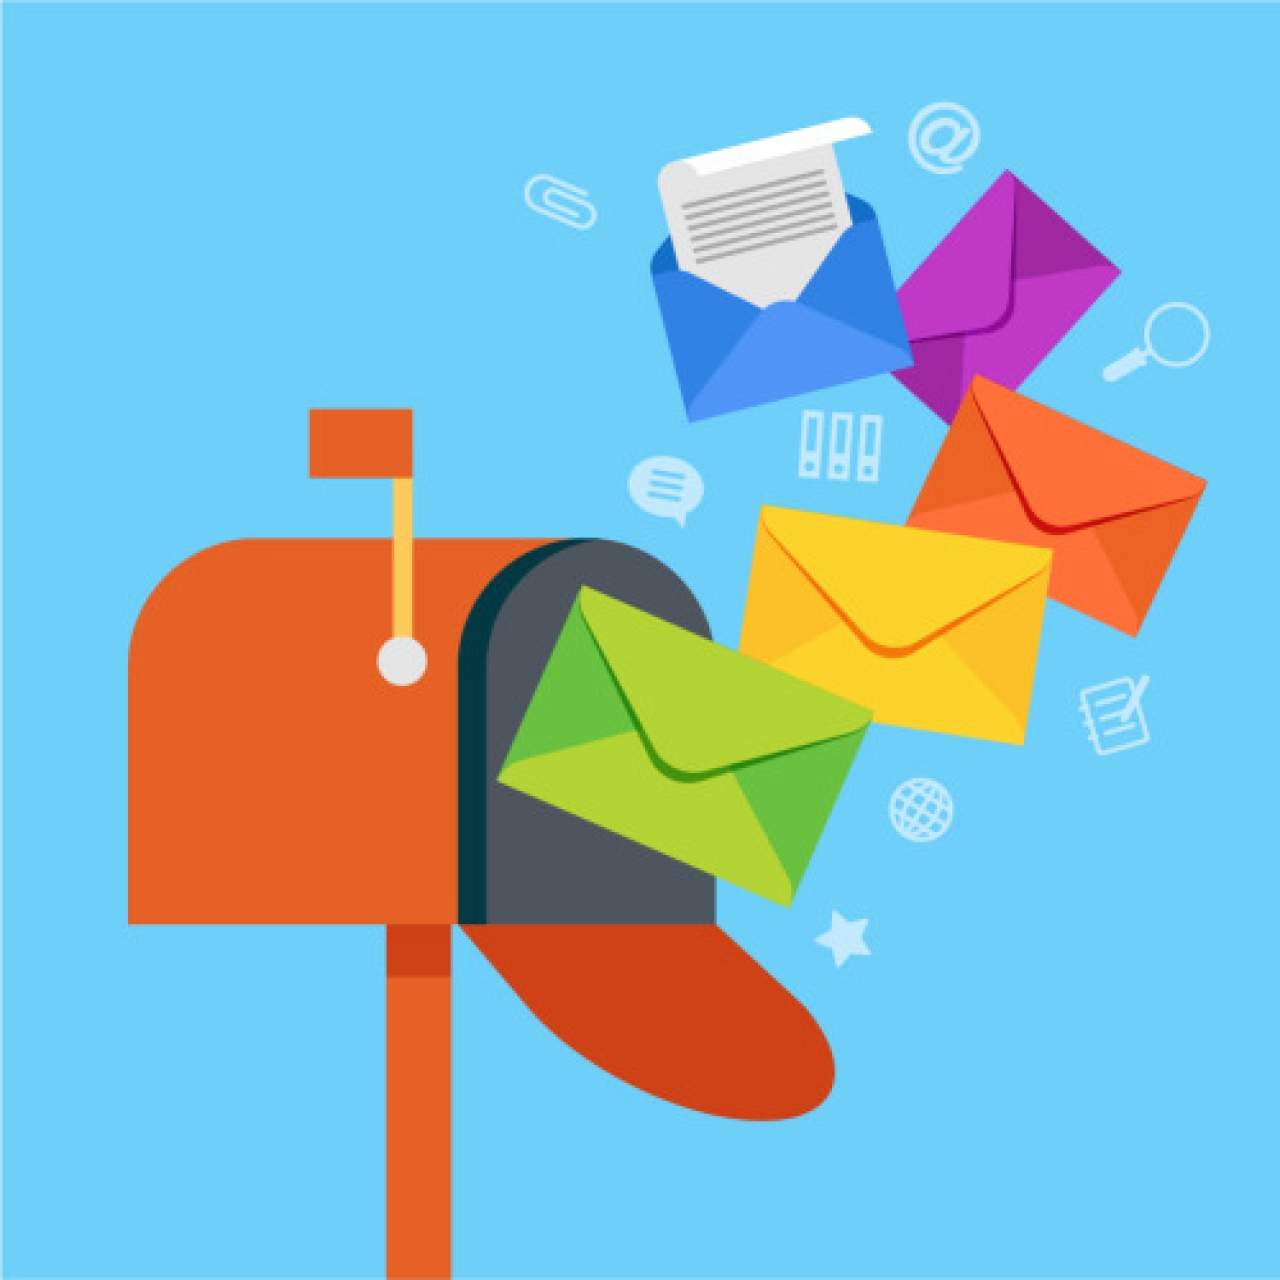 Direct Mail Reborn: B2B Marketers Integrate More Physical Mail With Digital Channels